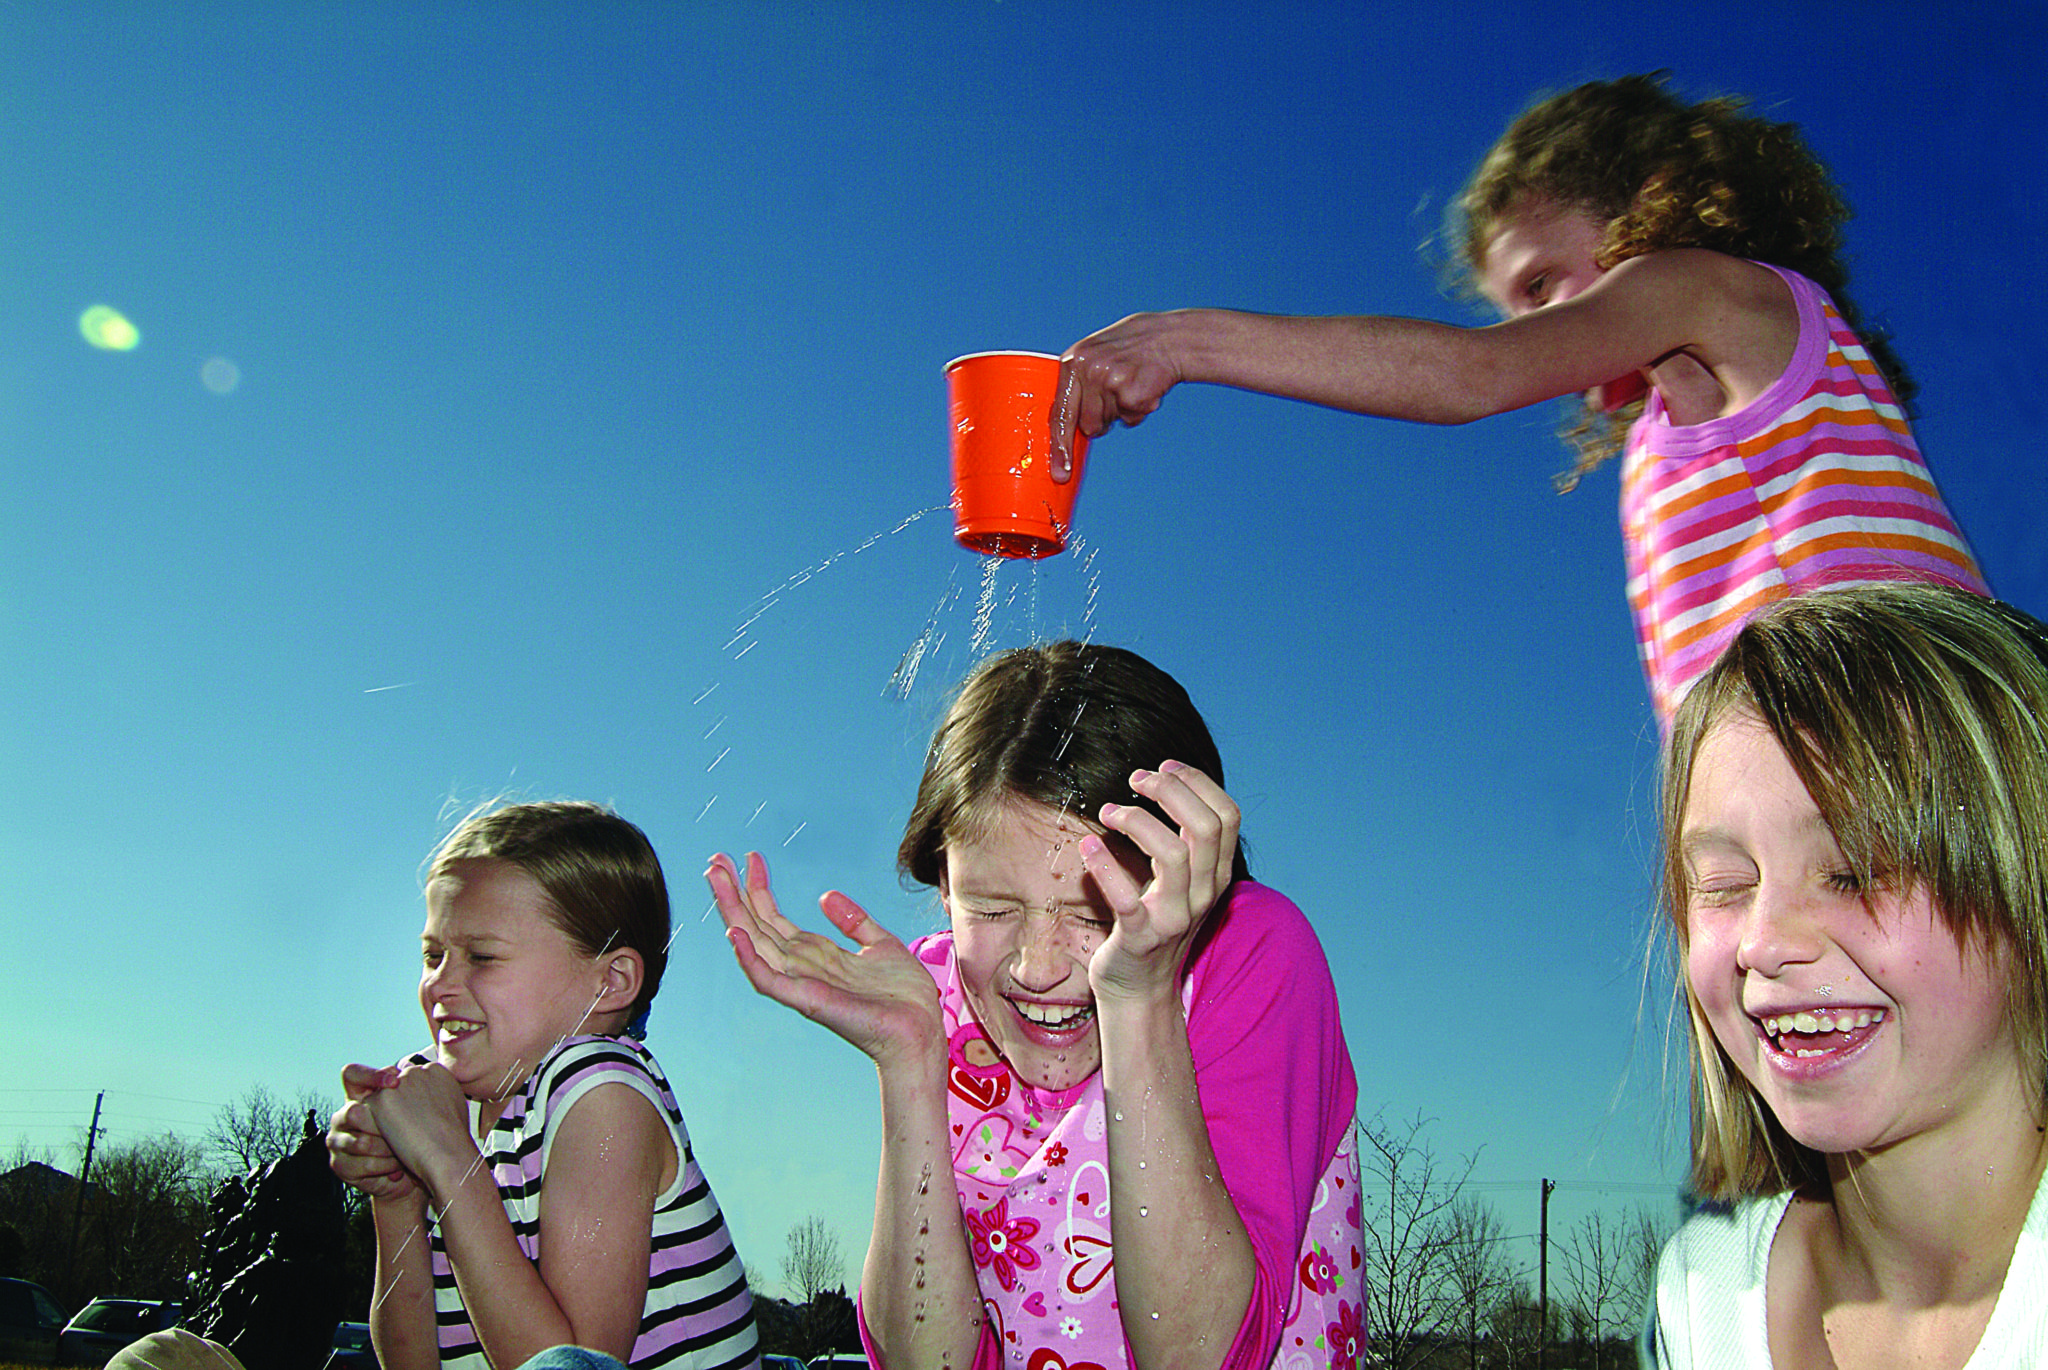 A child with a leaky cup walks around sprinkling friends with water.